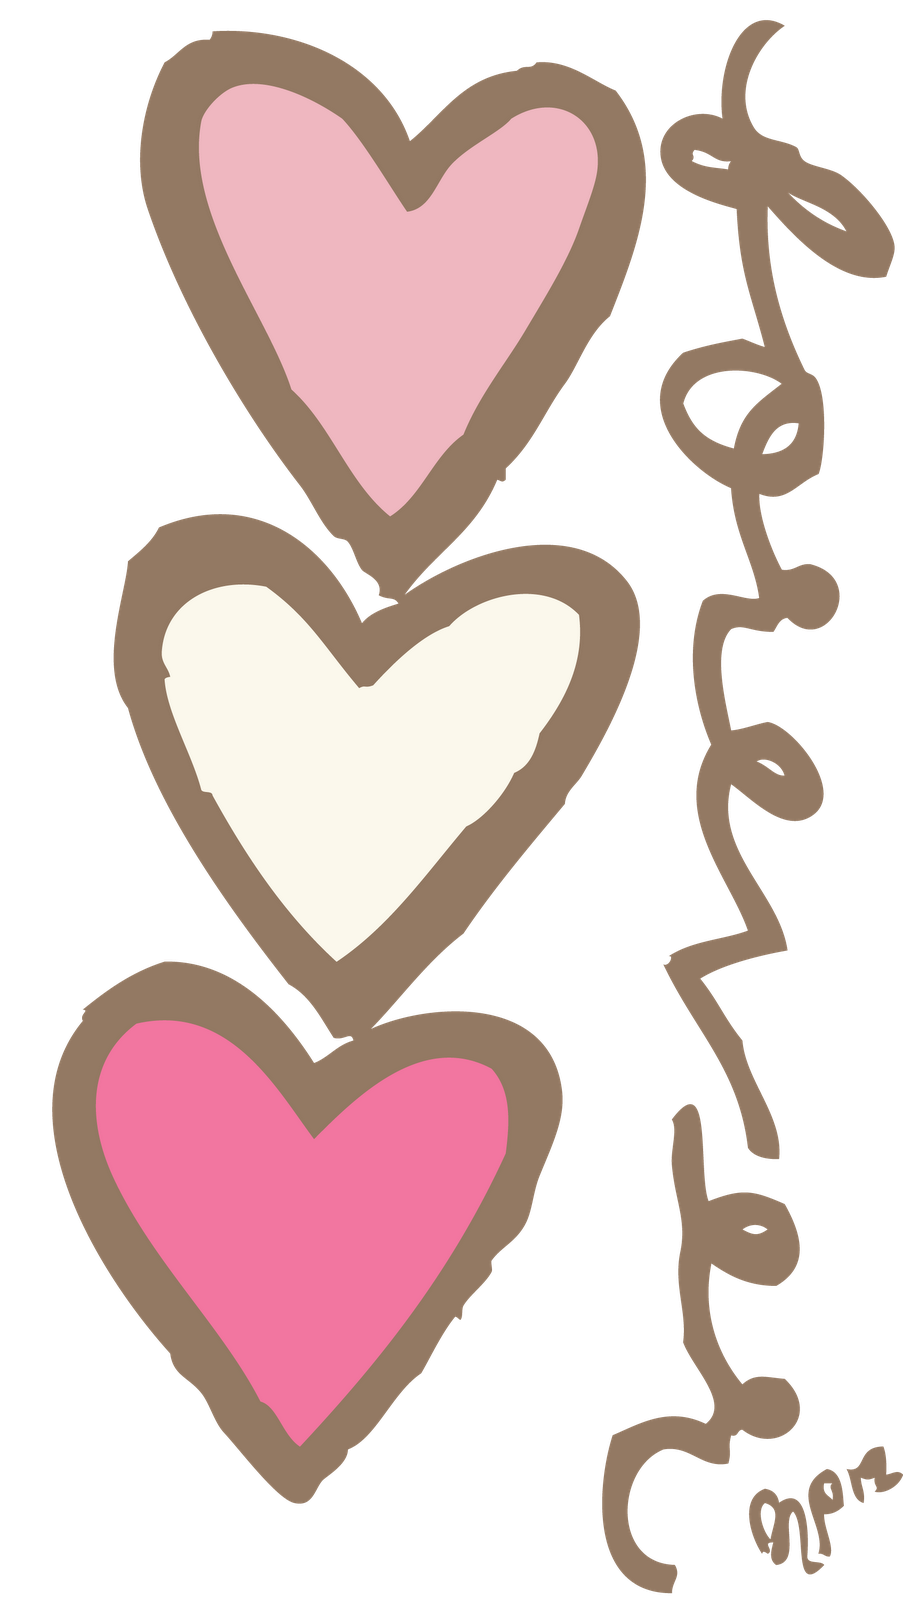 Girly clipart tiara. All things illustrating free